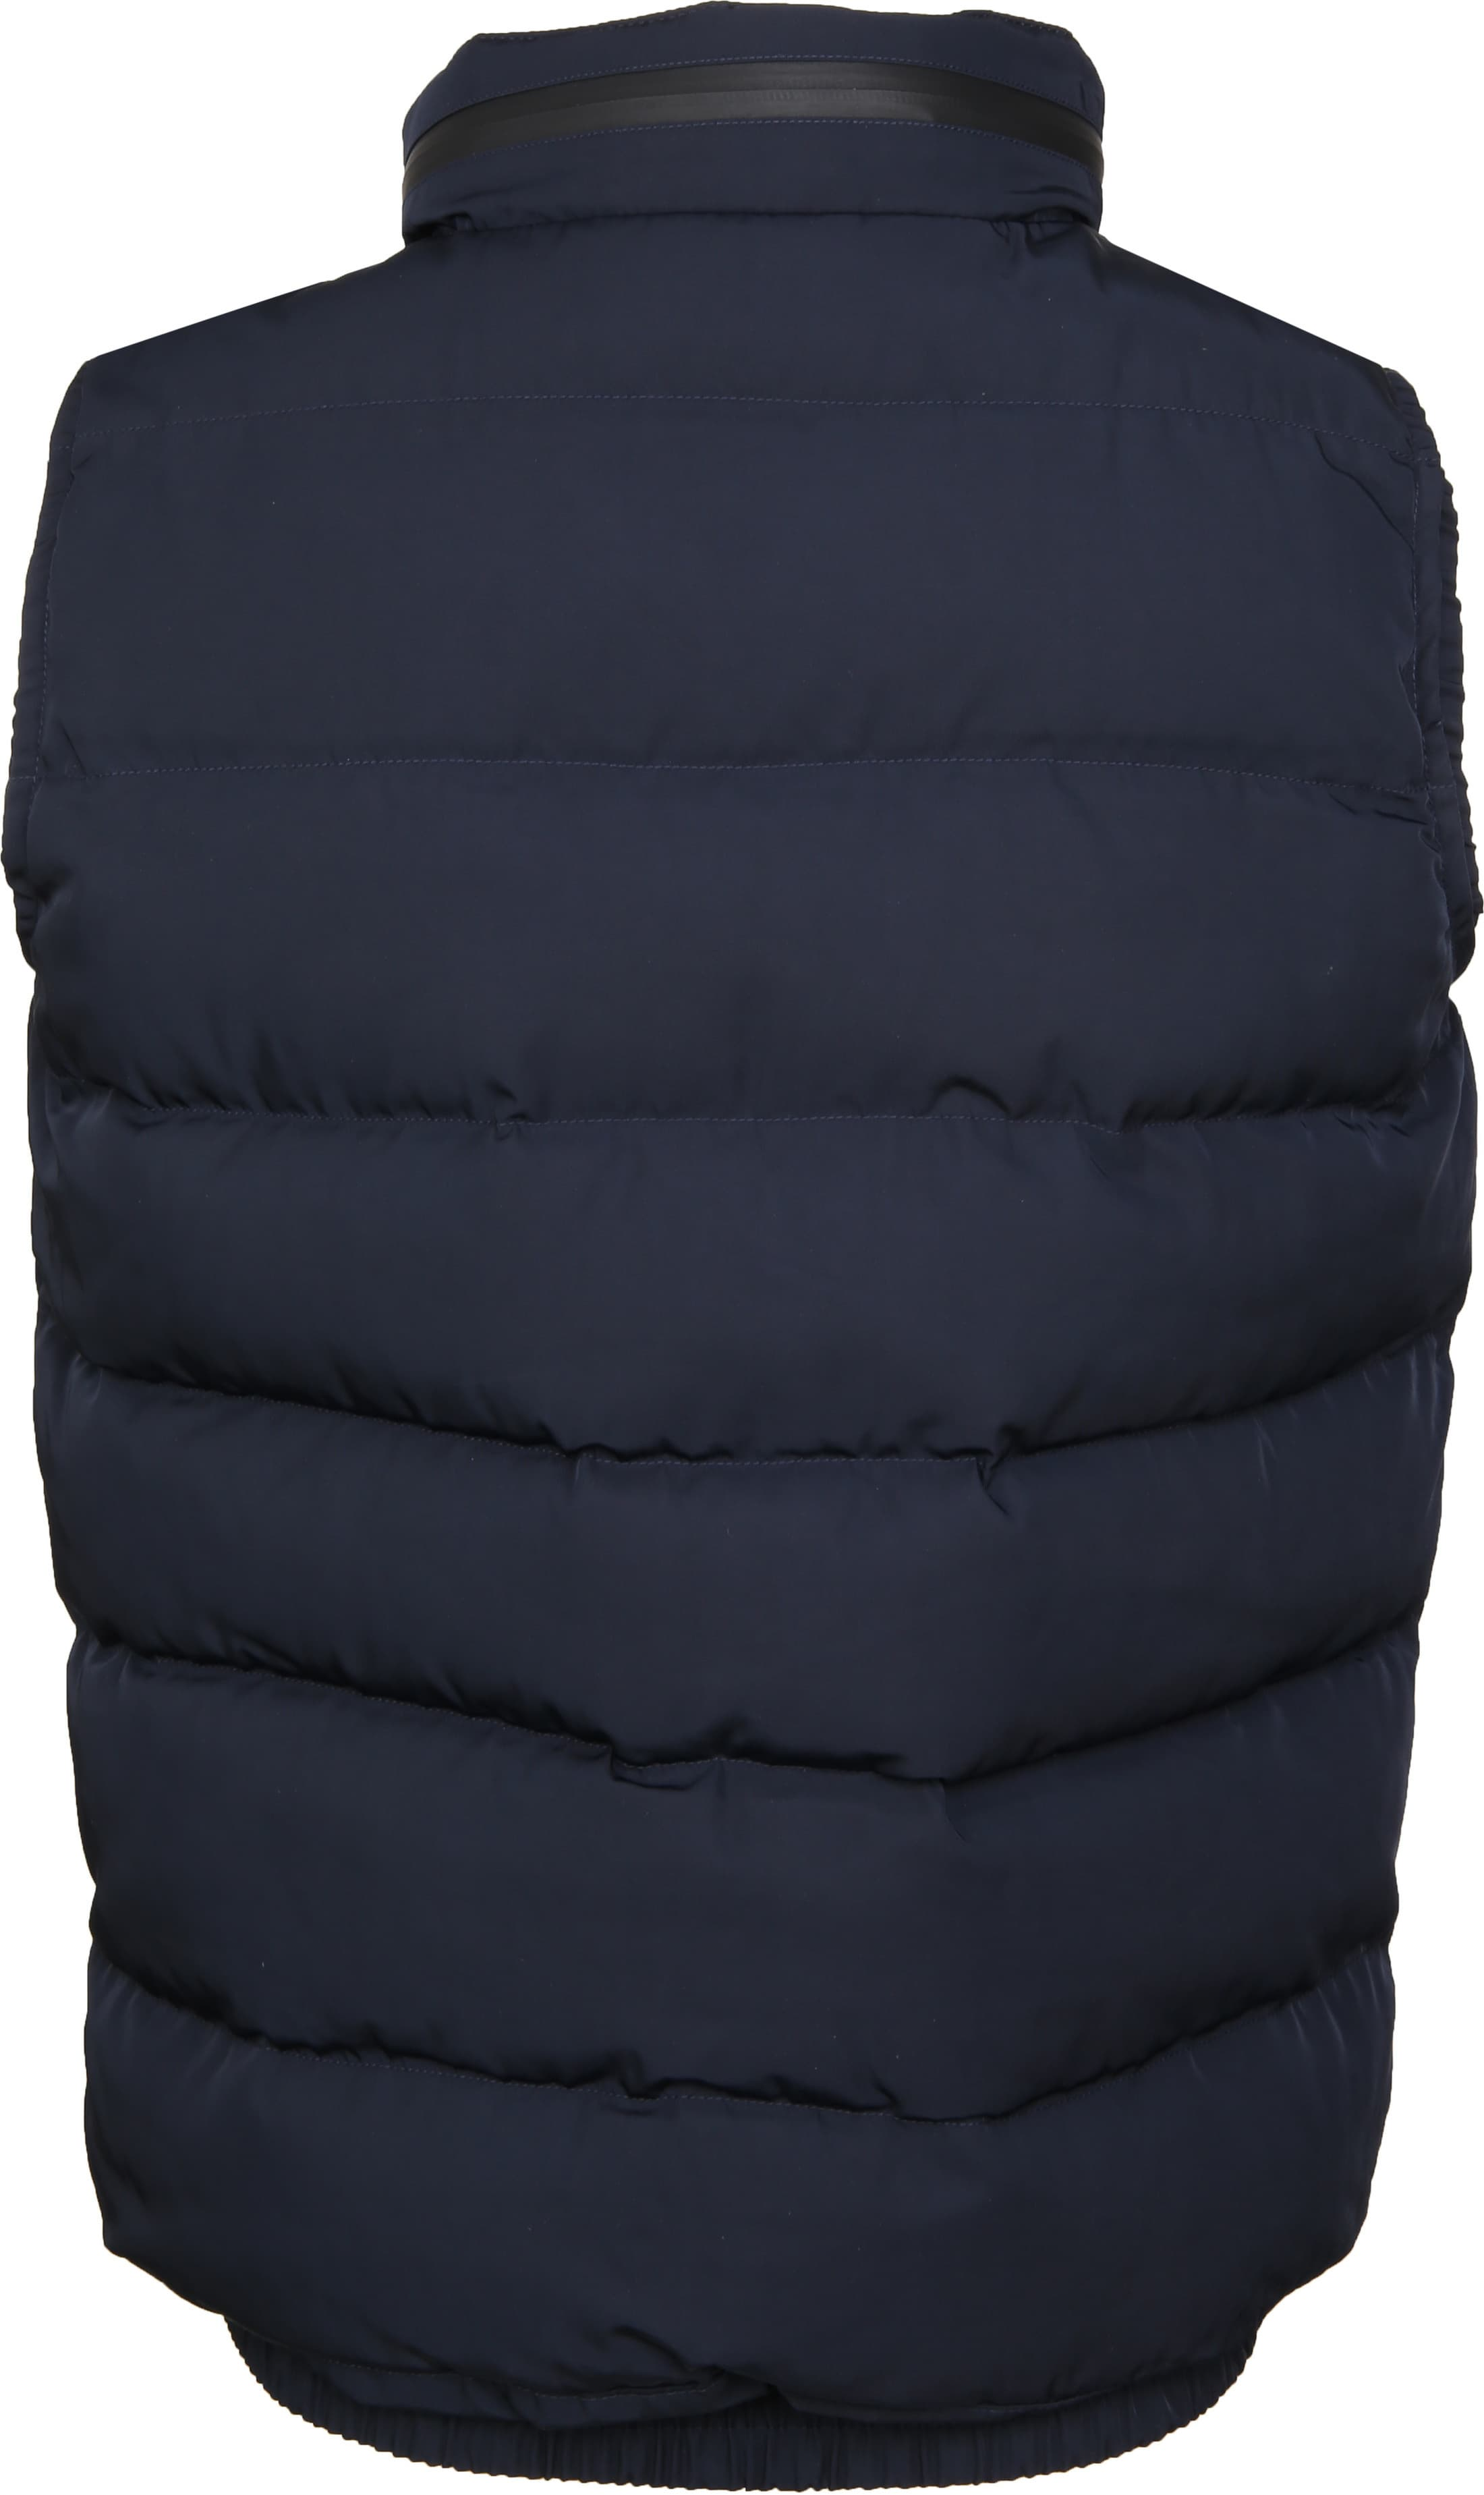 Suitable Bodywarmer Dirk Navy foto 4